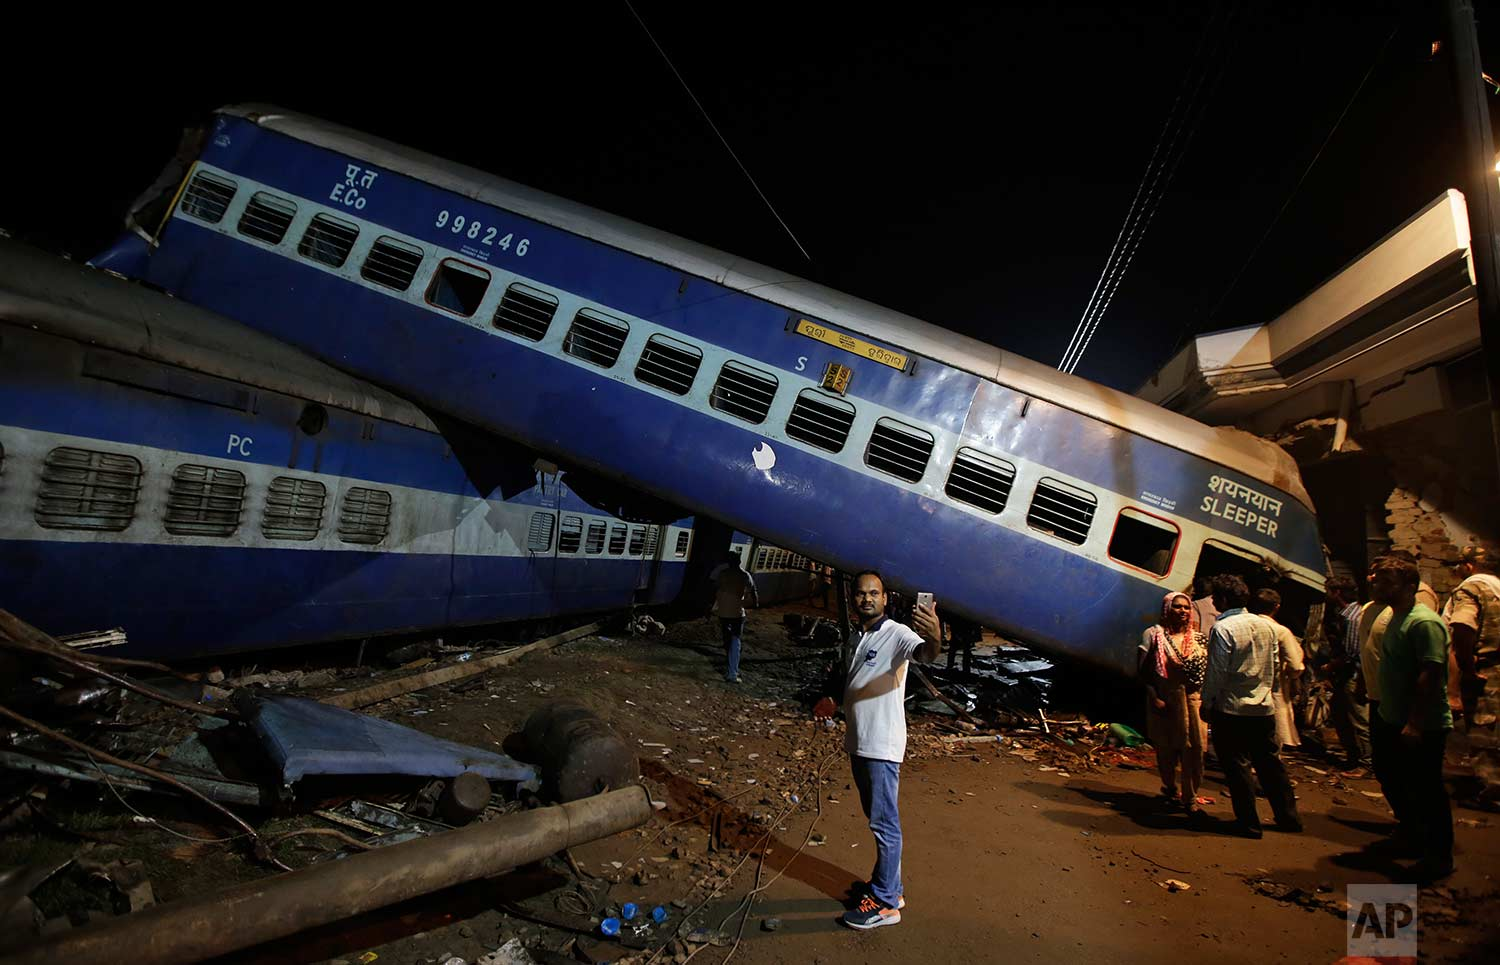 A man takes a selfie photo near the upturned coaches of the Kalinga-Utkal Express after an accident near Khatauli, in the northern Indian state of Uttar Pradesh, India, Sunday, Aug. 20, 2017. (AP Photo/Altaf Qadri)